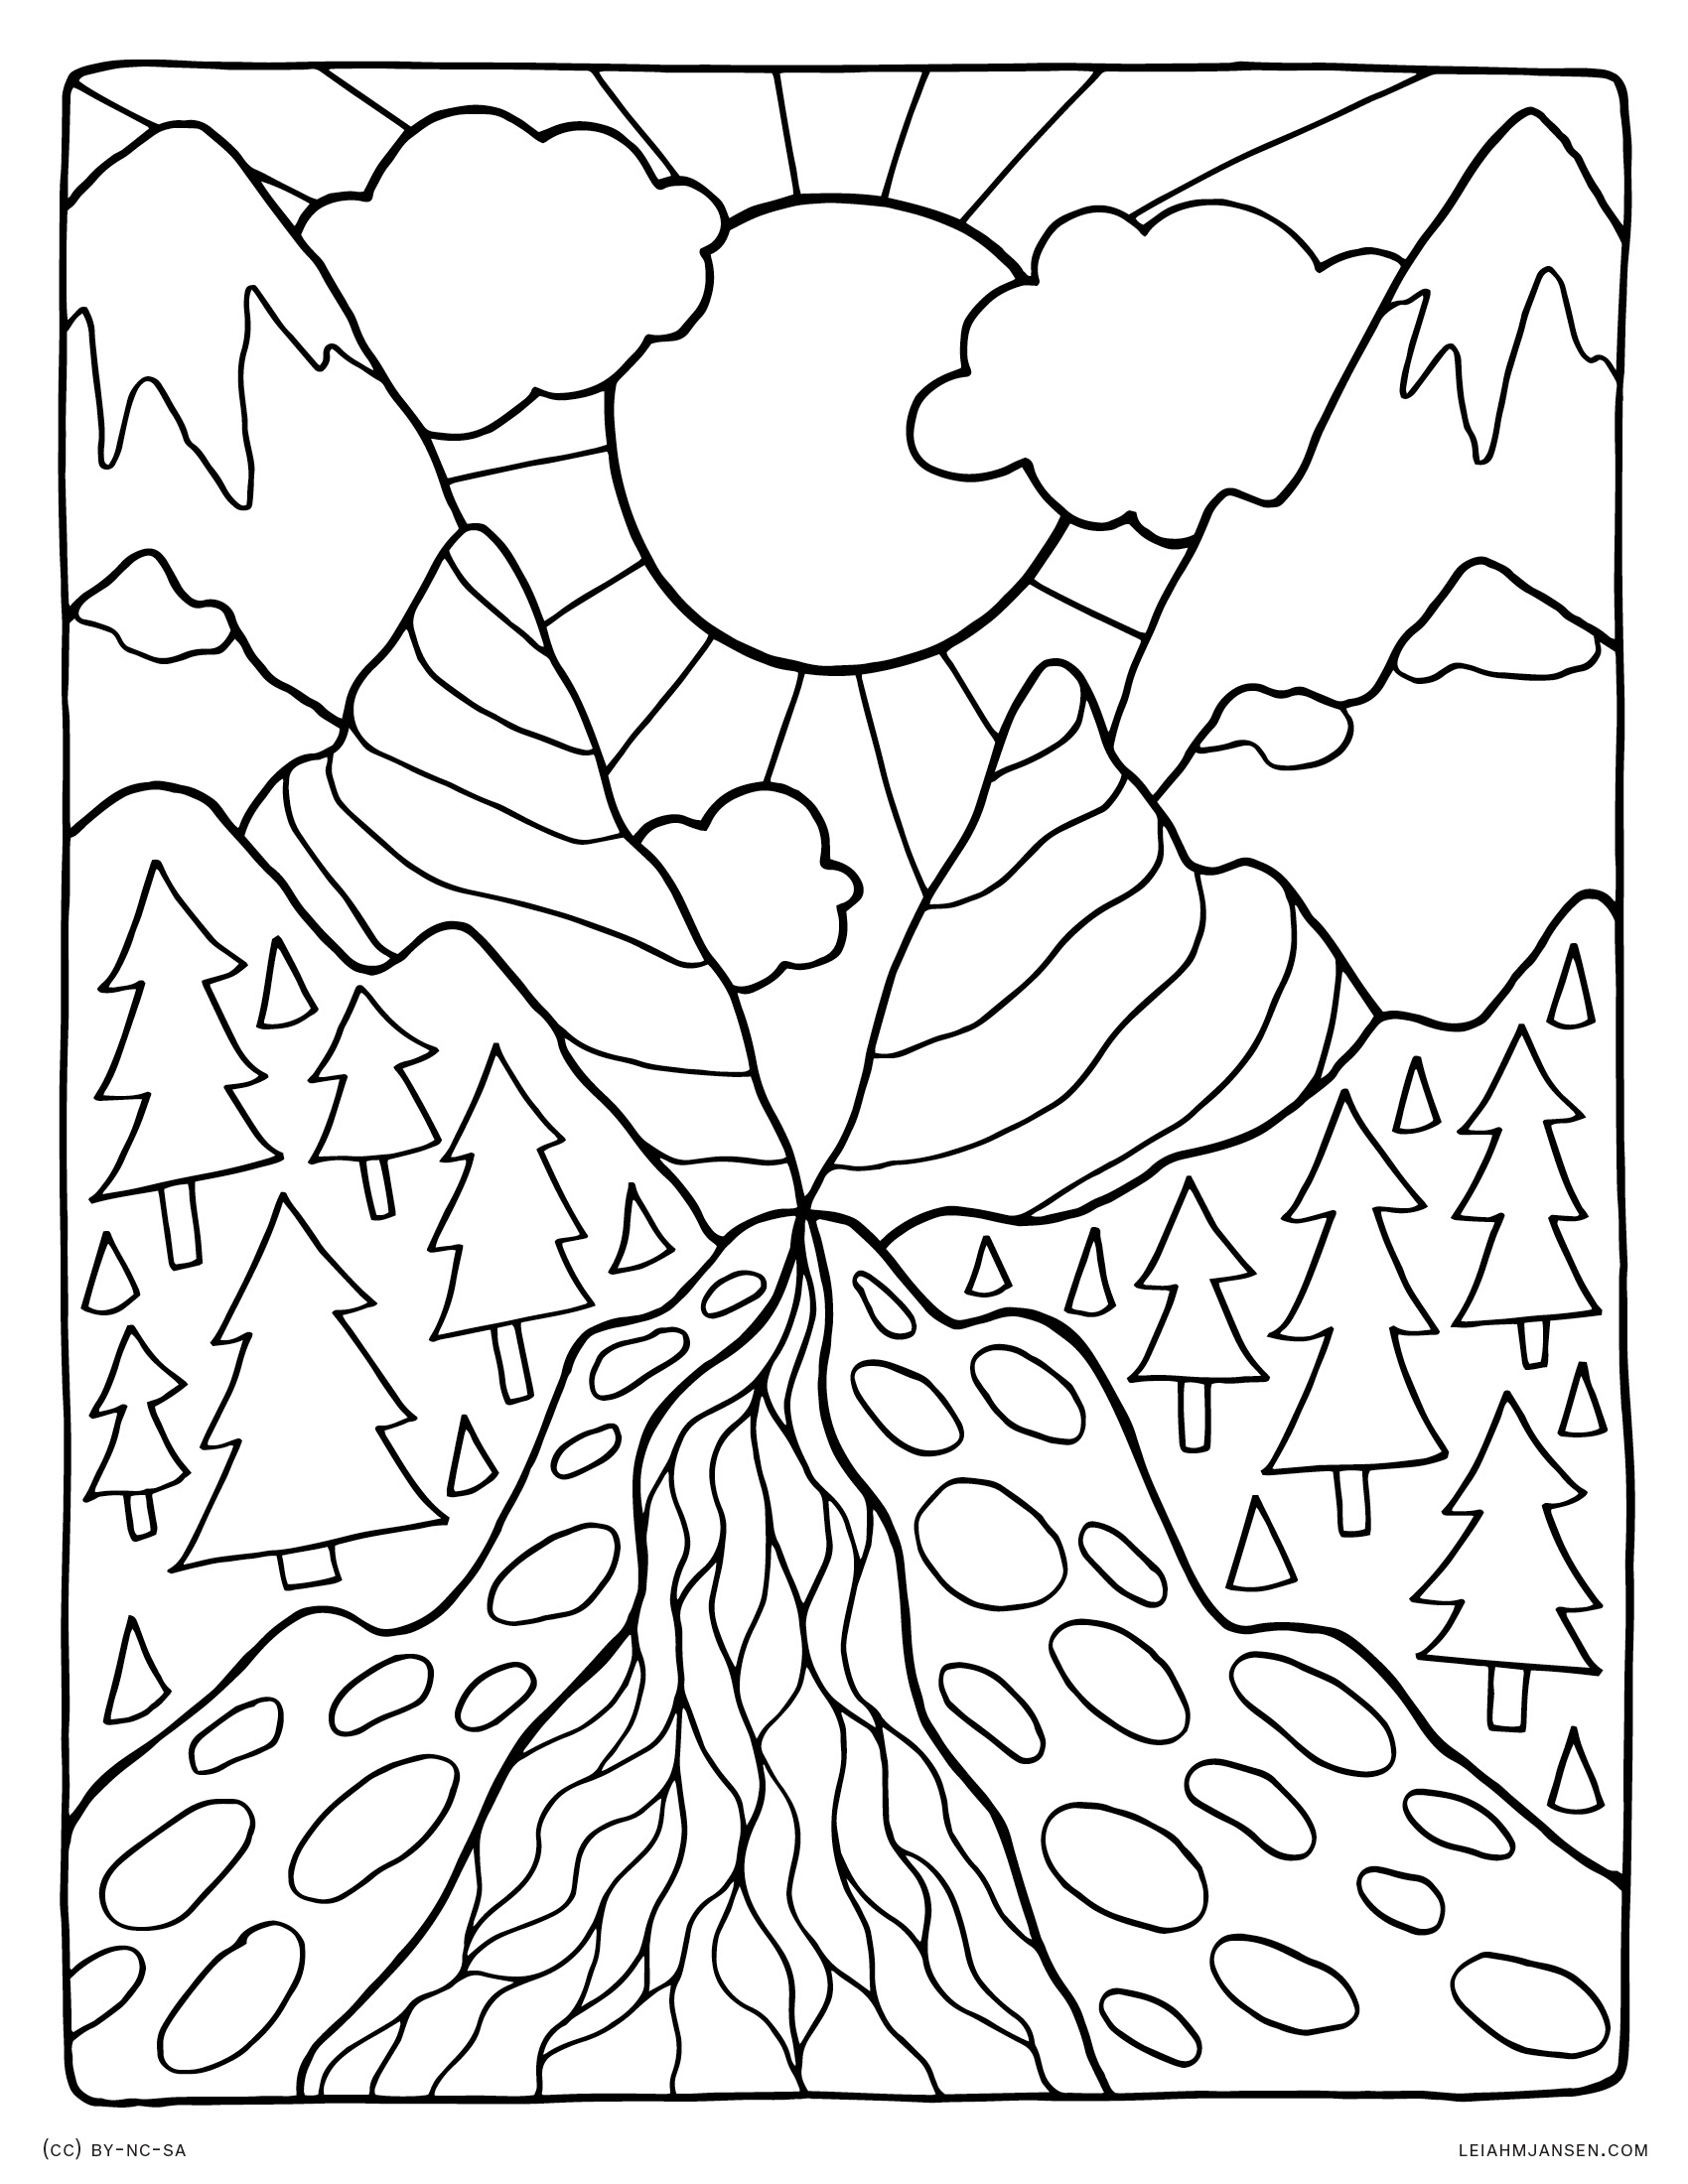 Uncategorized Landscape Coloring Pages For S mountain scenery coloring pages murderthestout disney page 009 scene free